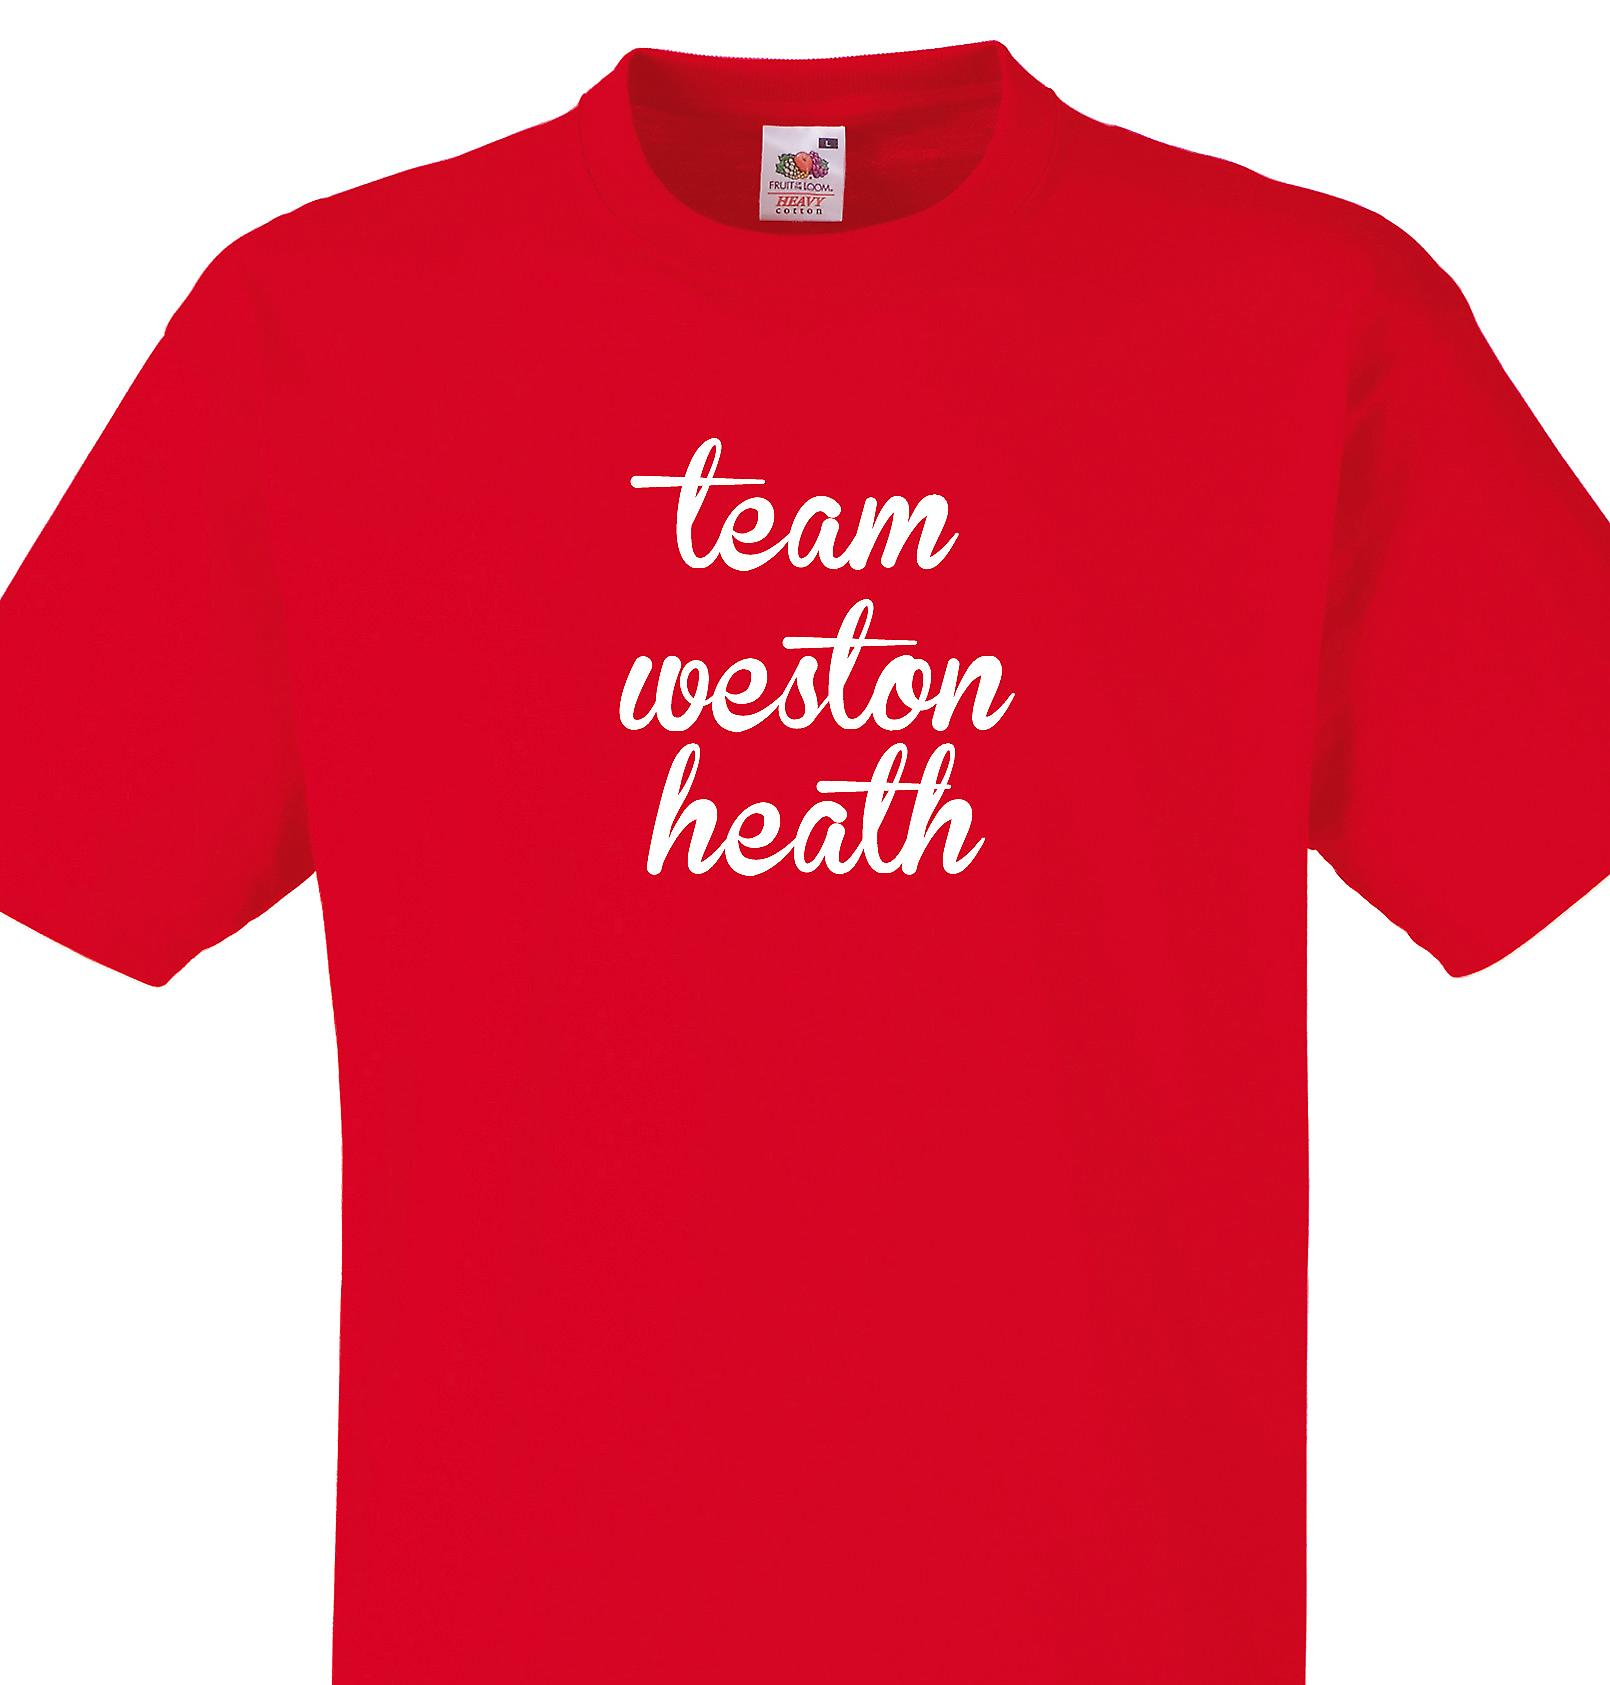 Team Weston heath Red T shirt